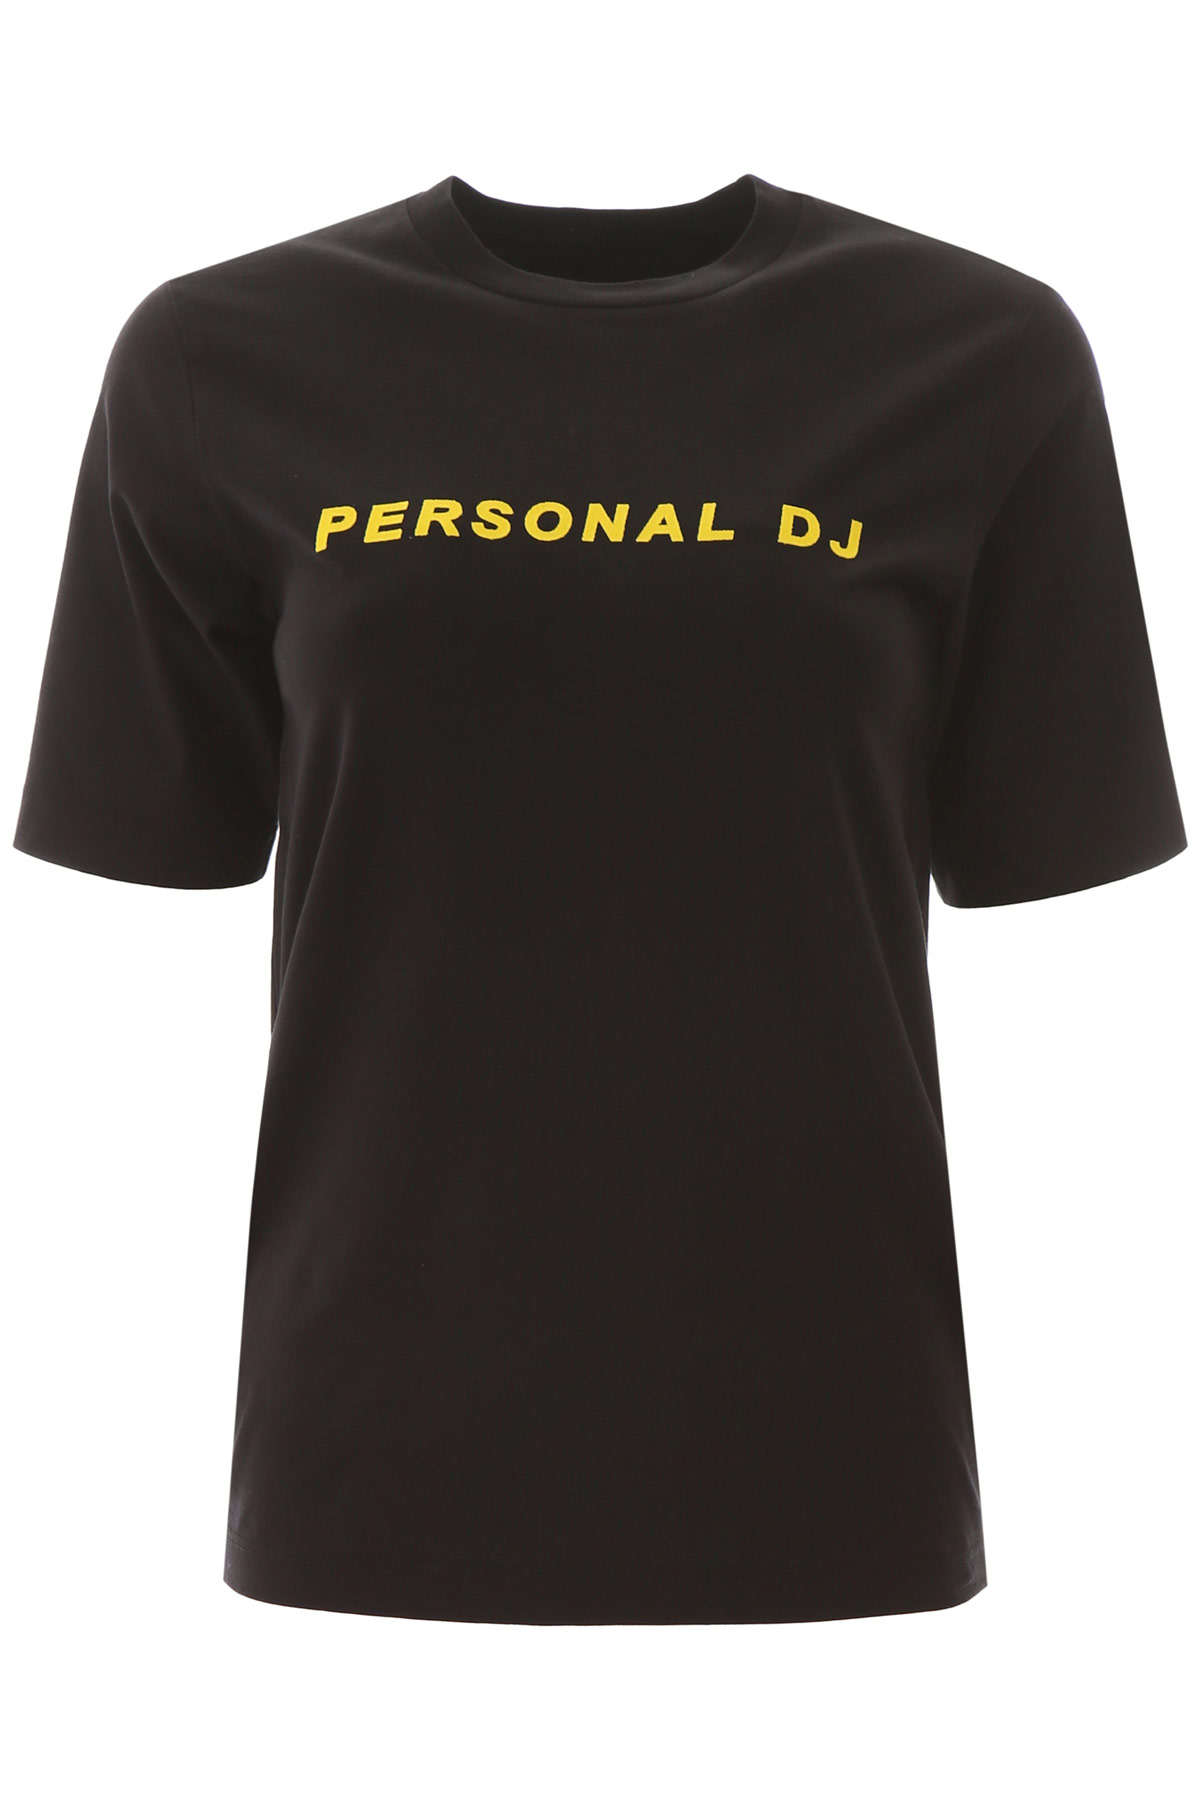 KIRIN PERSONAL DJ T-SHIRT S Black, Yellow Cotton